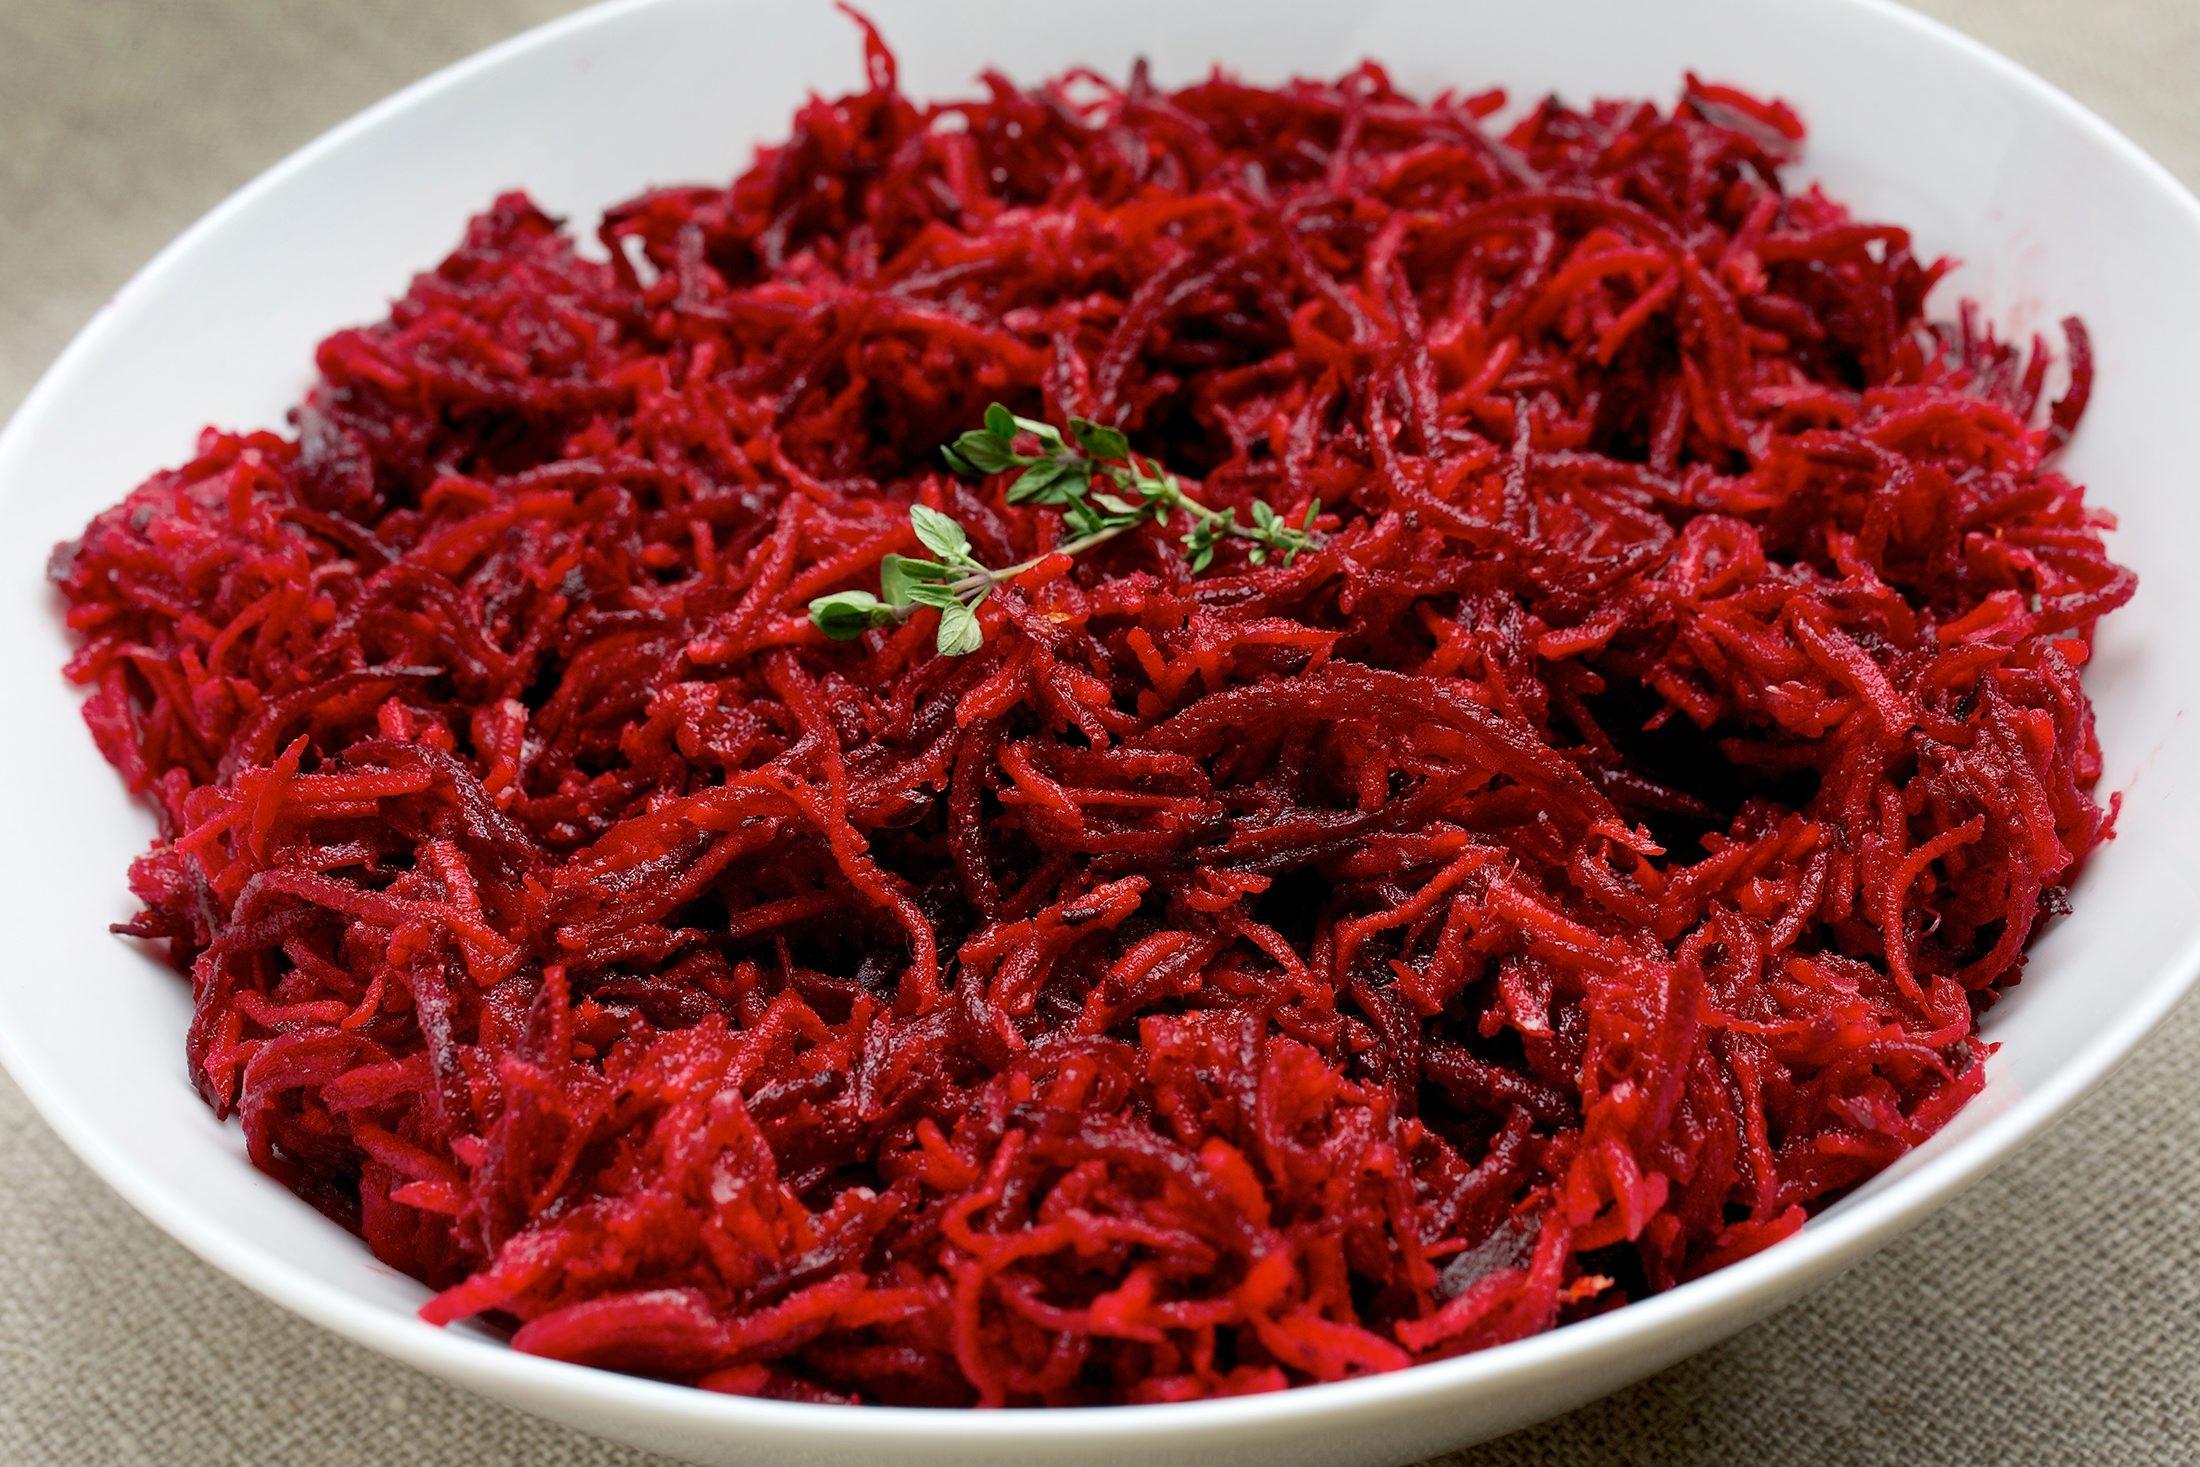 Finely grating the vegetables helps them absorb the juice and spices in this Moroccan-Style Carrot and Beet Salad.